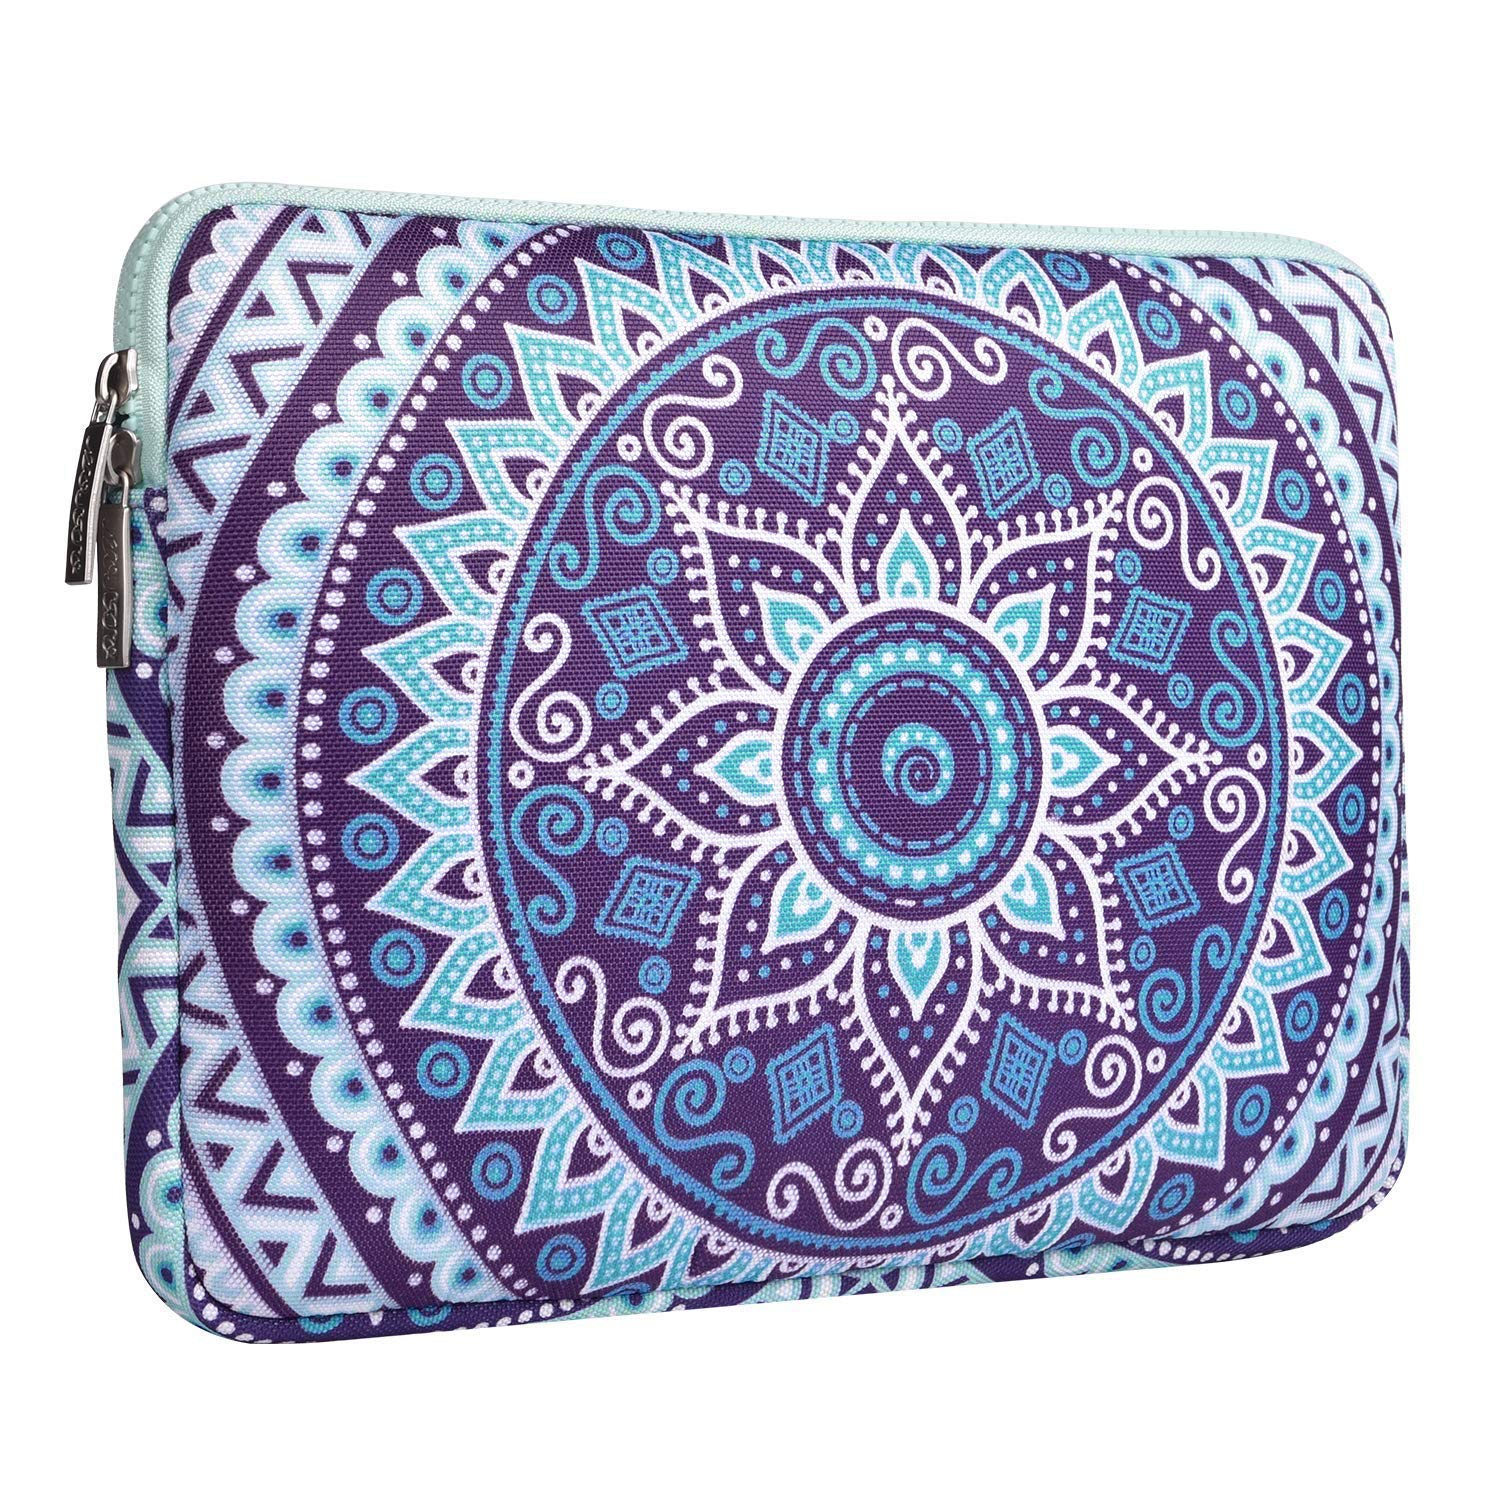 MOSISO Laptop Sleeve Compatible 13 Inch New MacBook Pro Touch Bar A1989 & A1706 & A1708 2018 2017 2016, Surface Pro 2017, Dell XPS 13, Canvas Mandala Tablet Bag with Small Case, Ultra Violet and Green by MOSISO (Image #4)